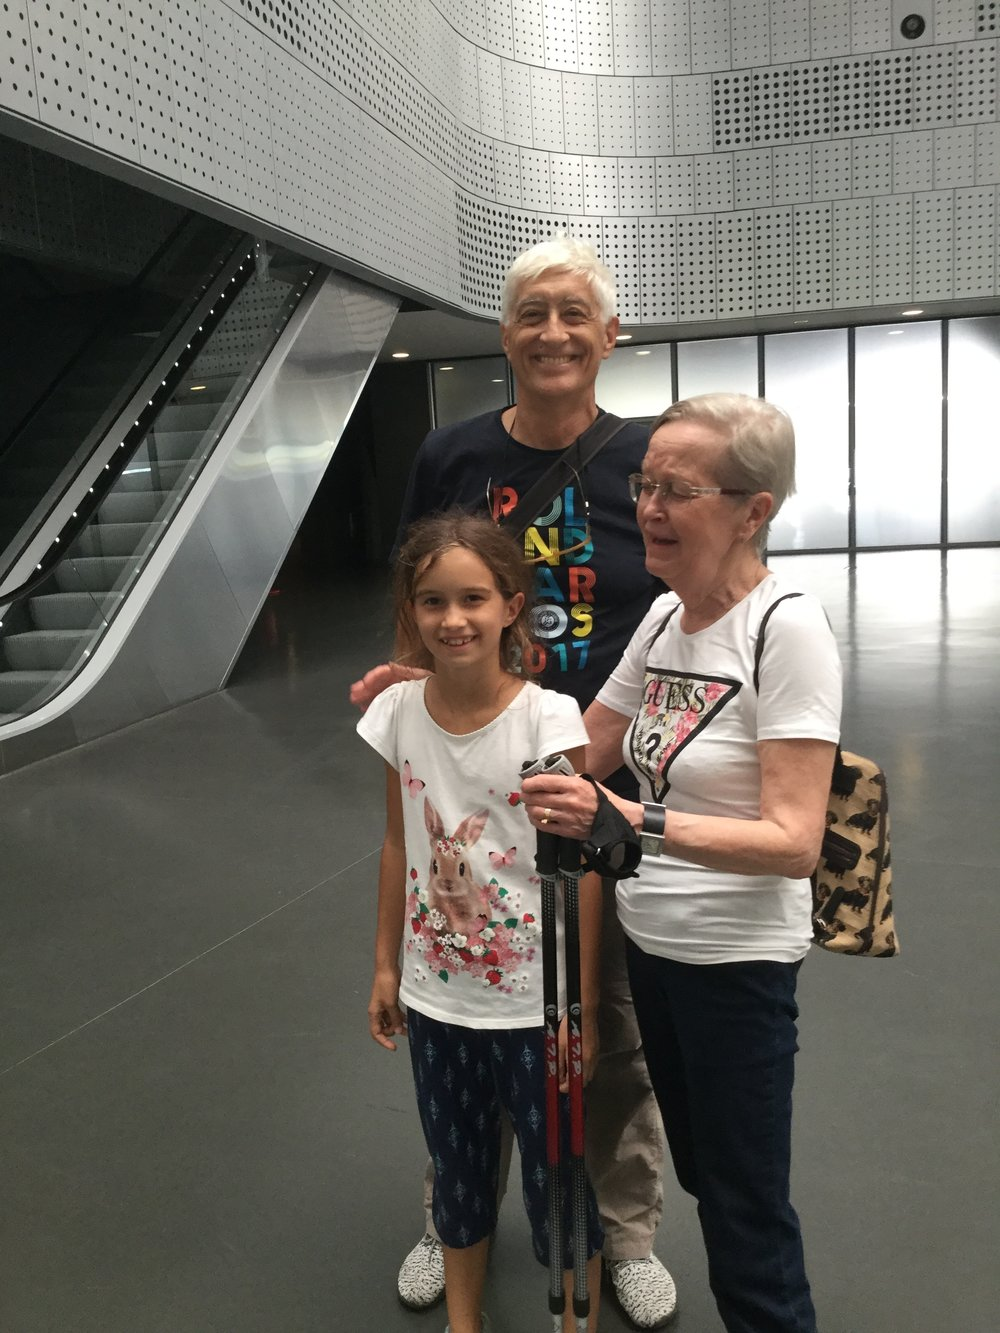 We went to see this very cool museum. In the lobby Dante, Lili and my aunt Eeva who is visiting from Finland!